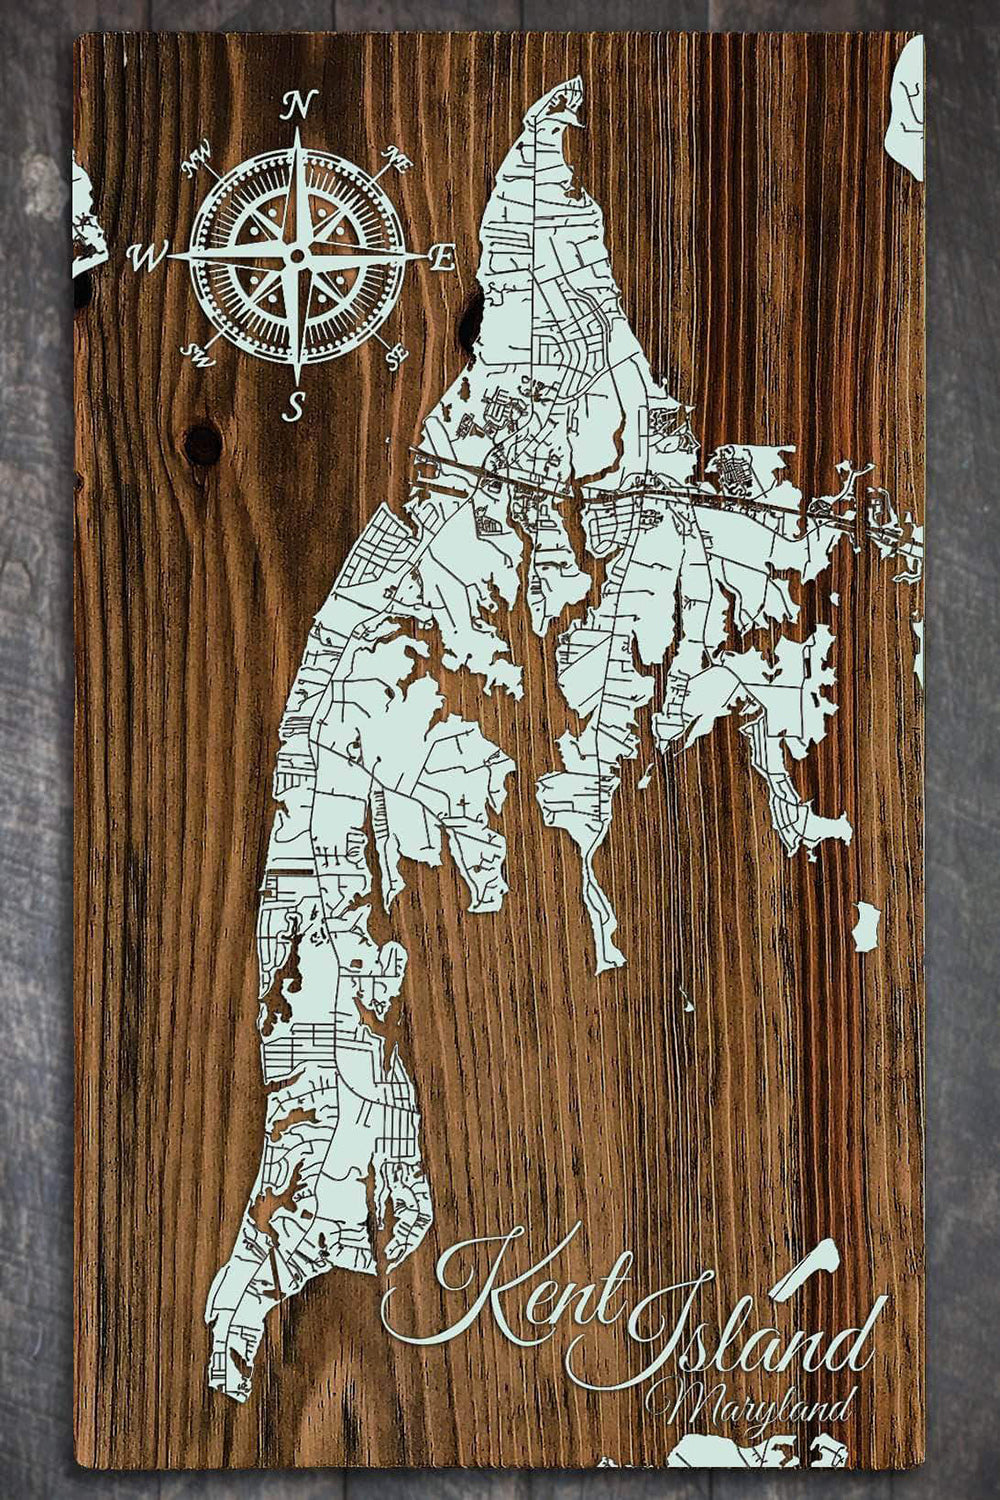 FP Wooden Map - Kent Island, Maryland (Seaglass)